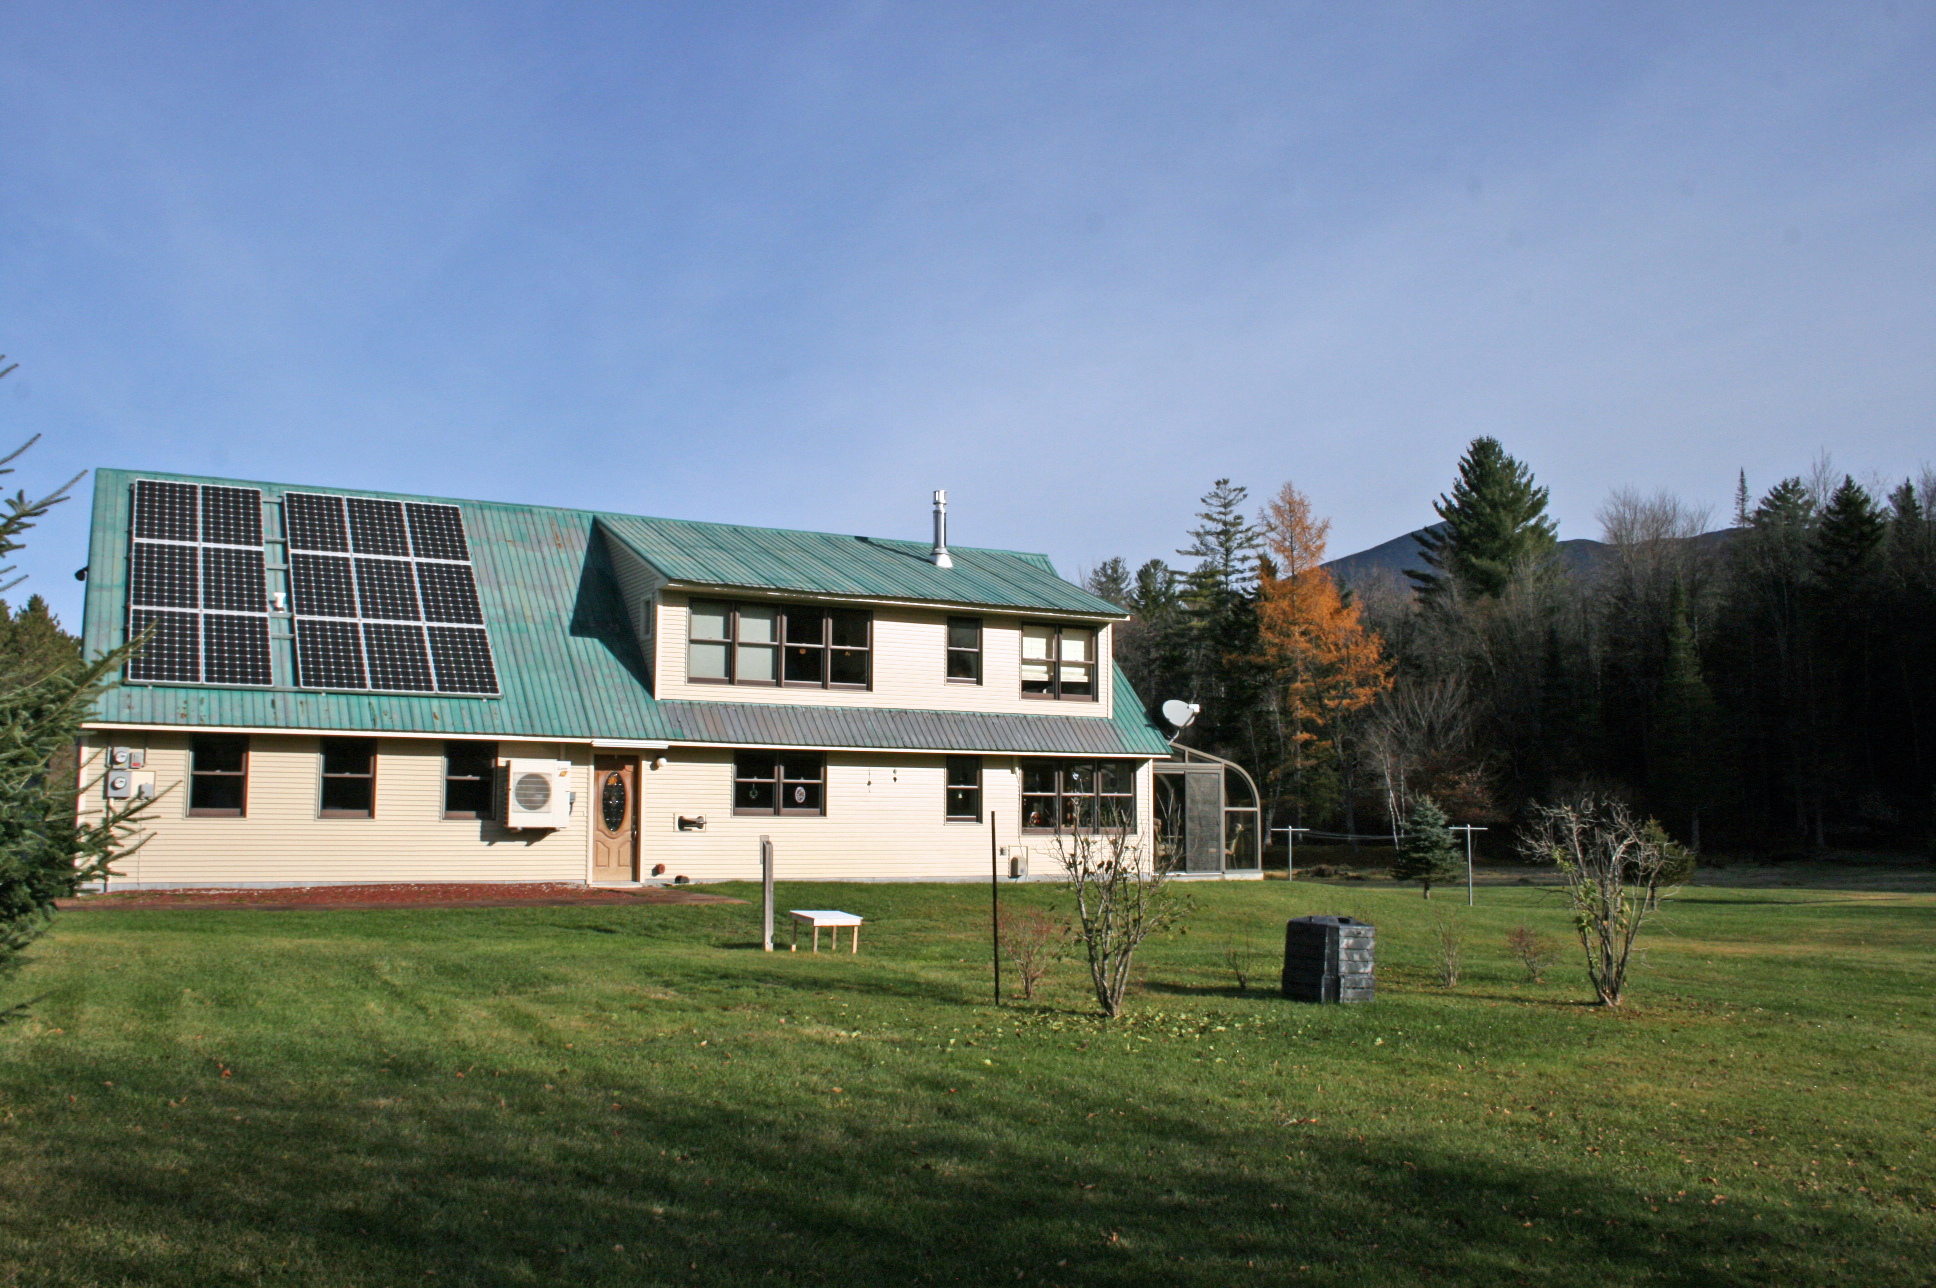 Single Family Home for Sale at 645 South Lincoln, Lincoln Lincoln, Vermont, 05443 United States